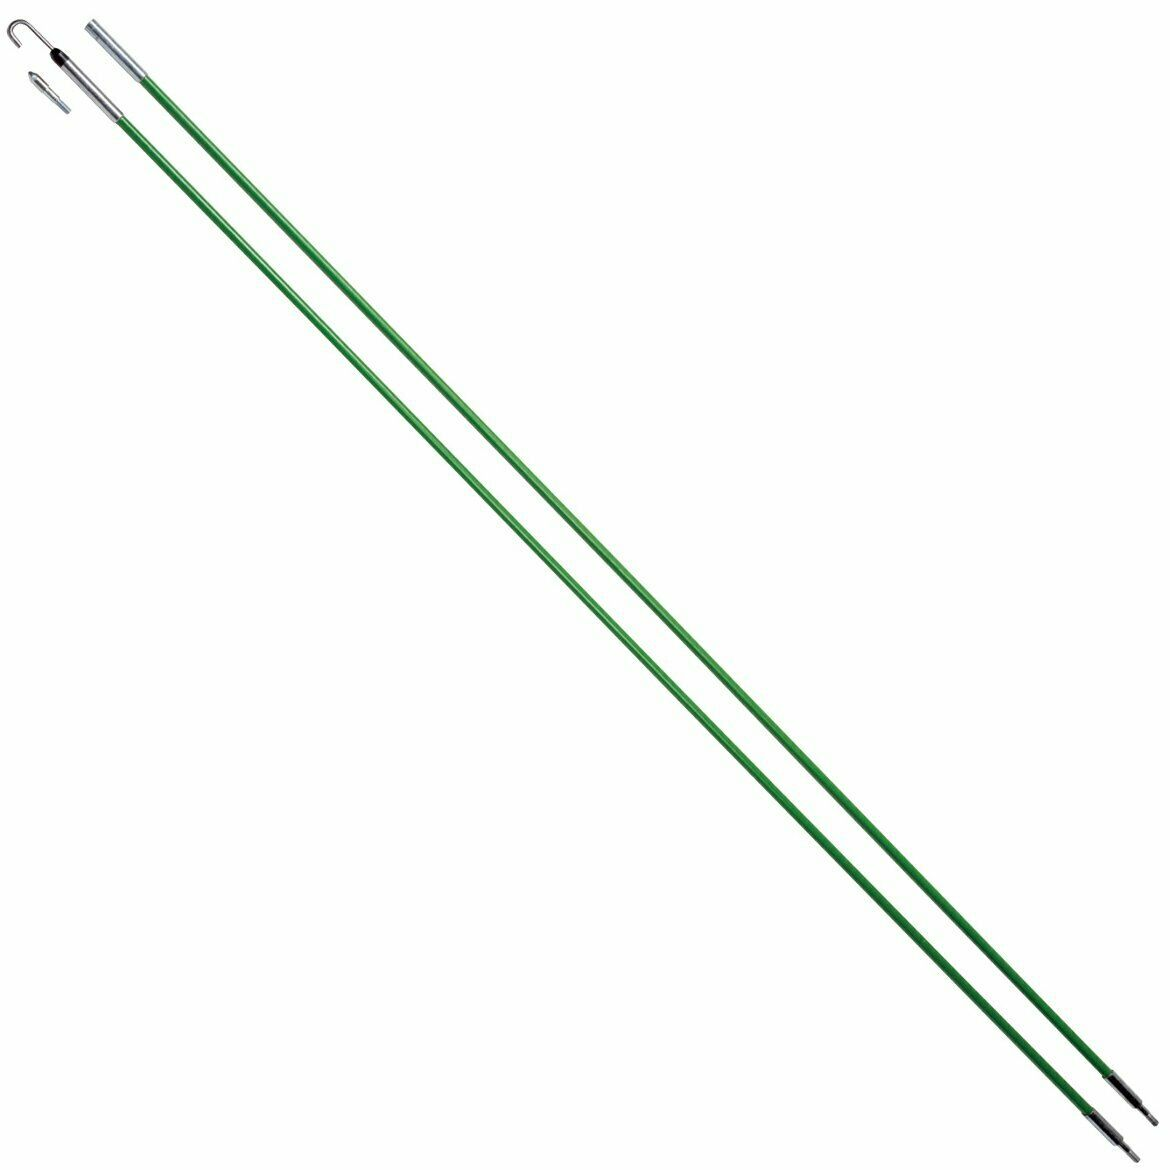 Greenlee 540-12 Fish Stix Kit With Bullet Nose And J-Hook Threaded Tips 1//4 X 12